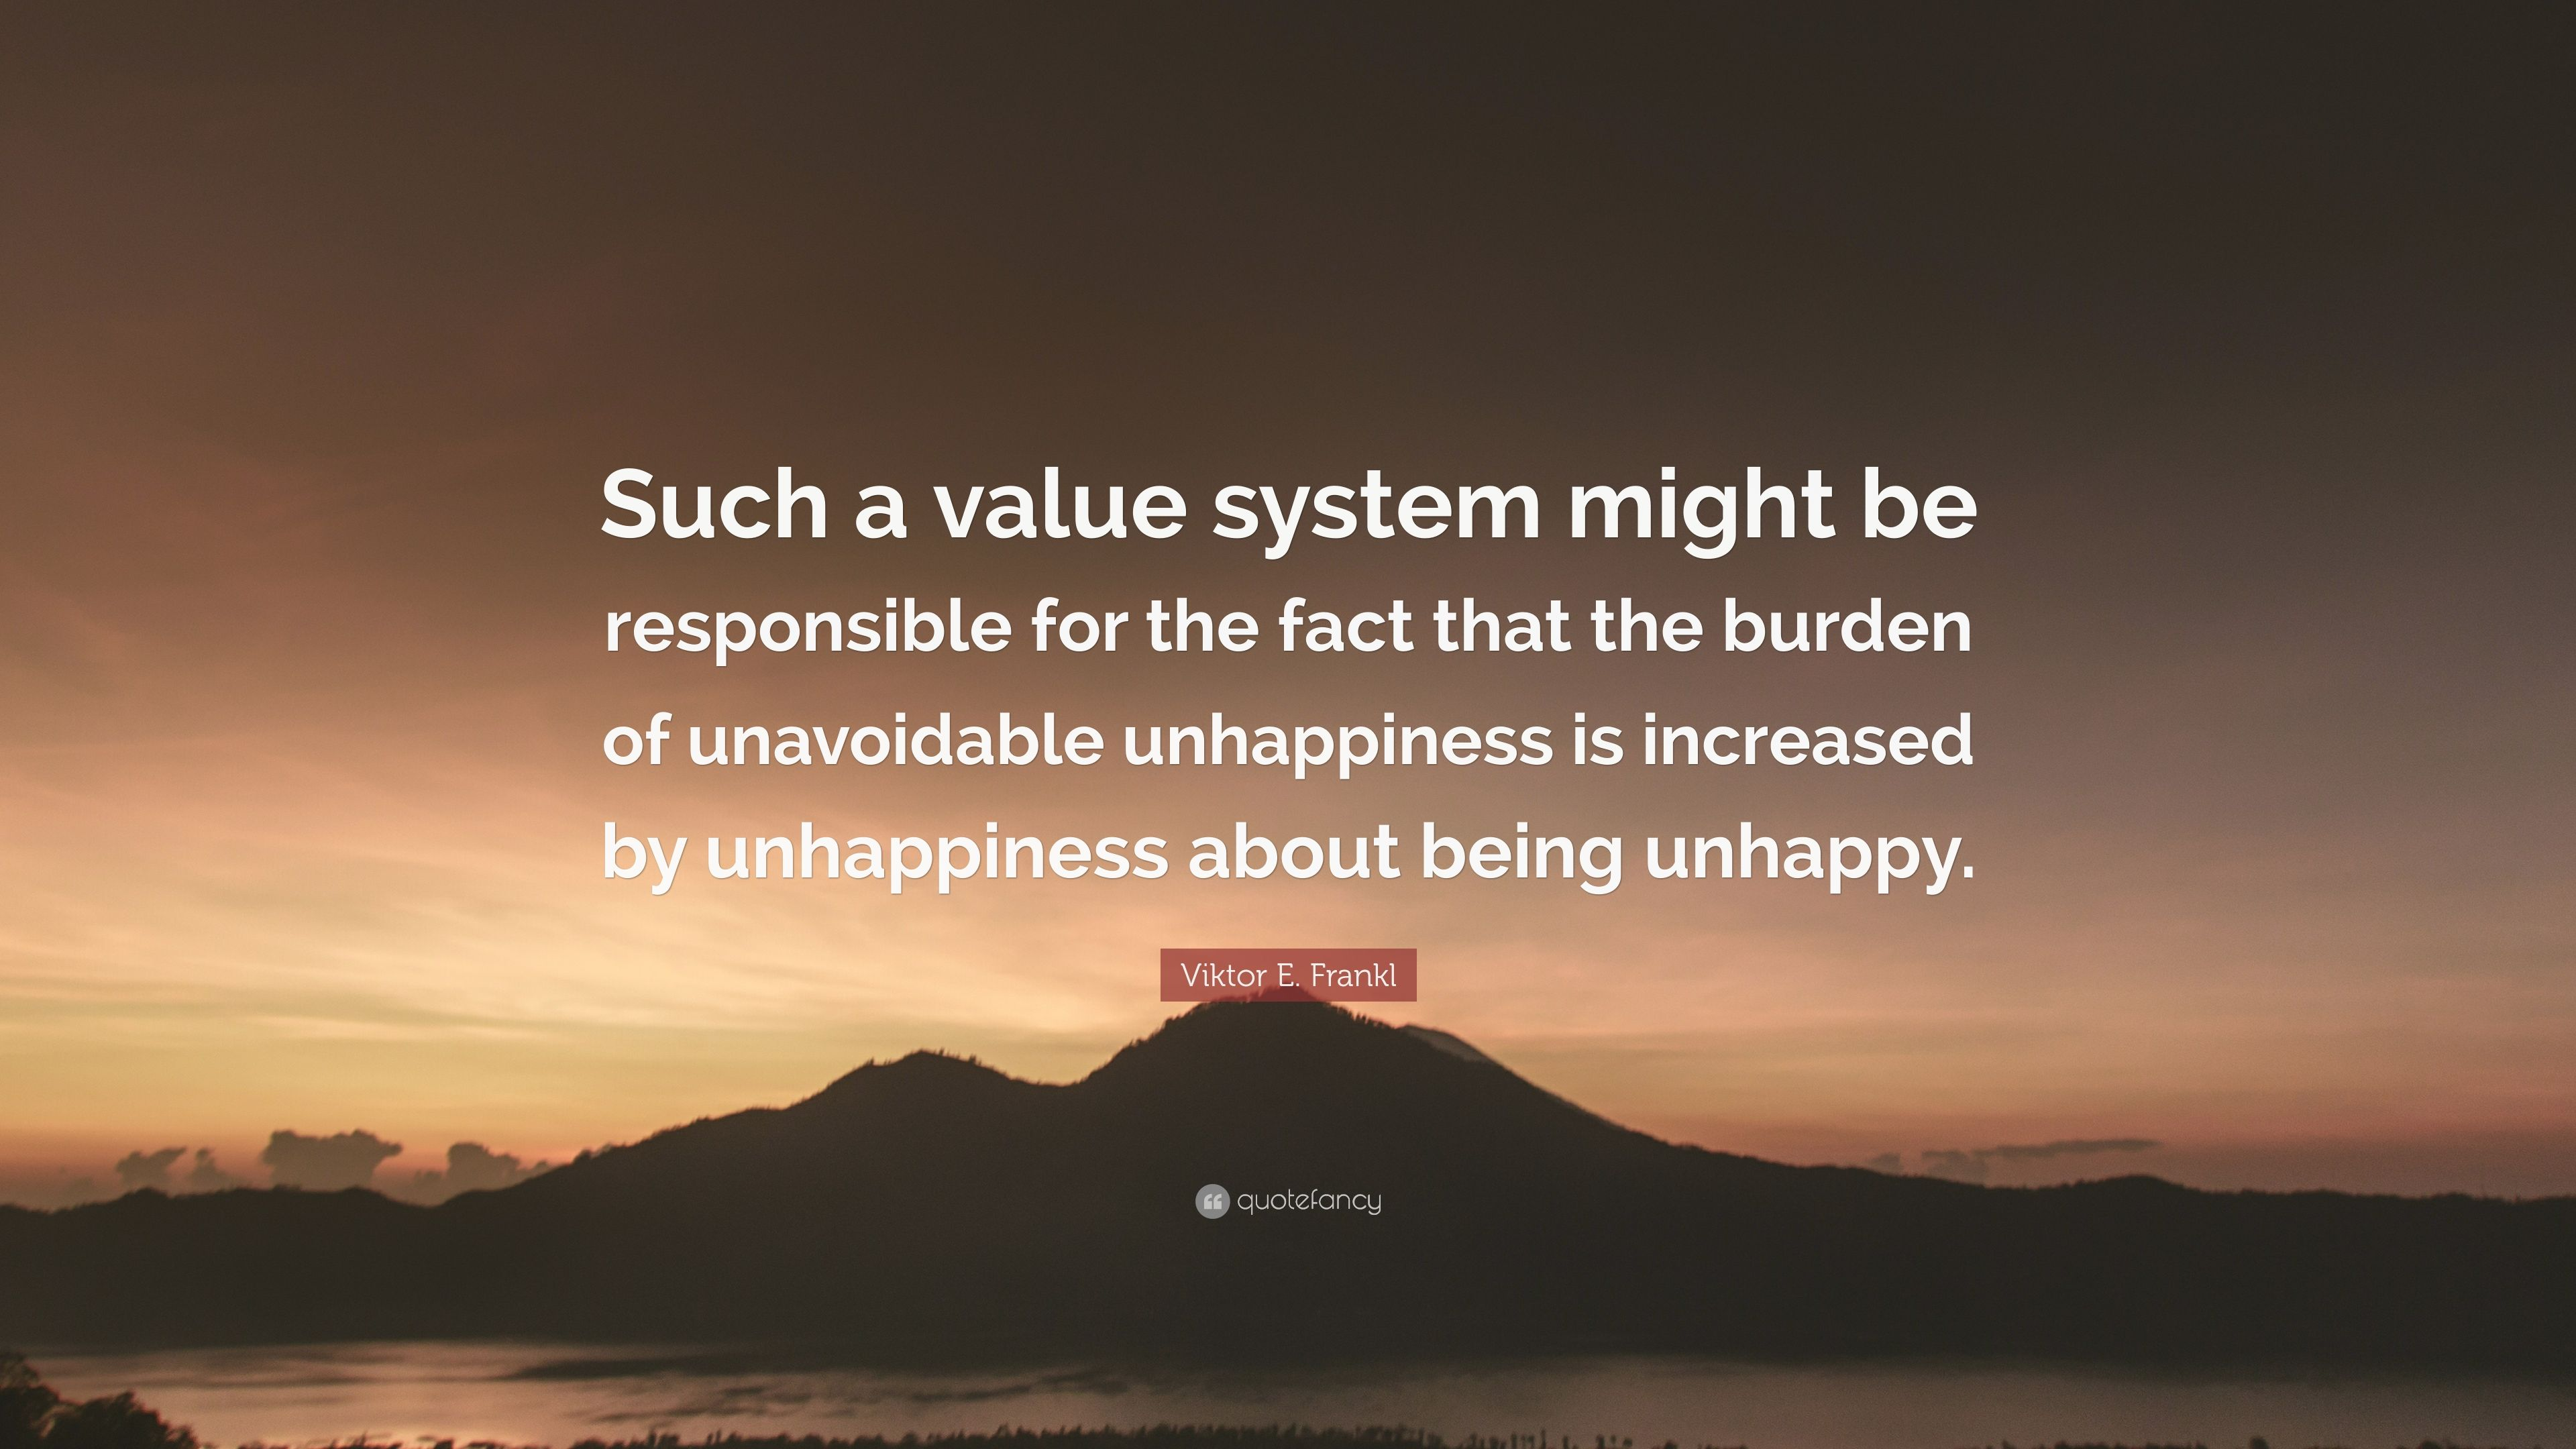 viktor e frankl quote such a value system might be responsible